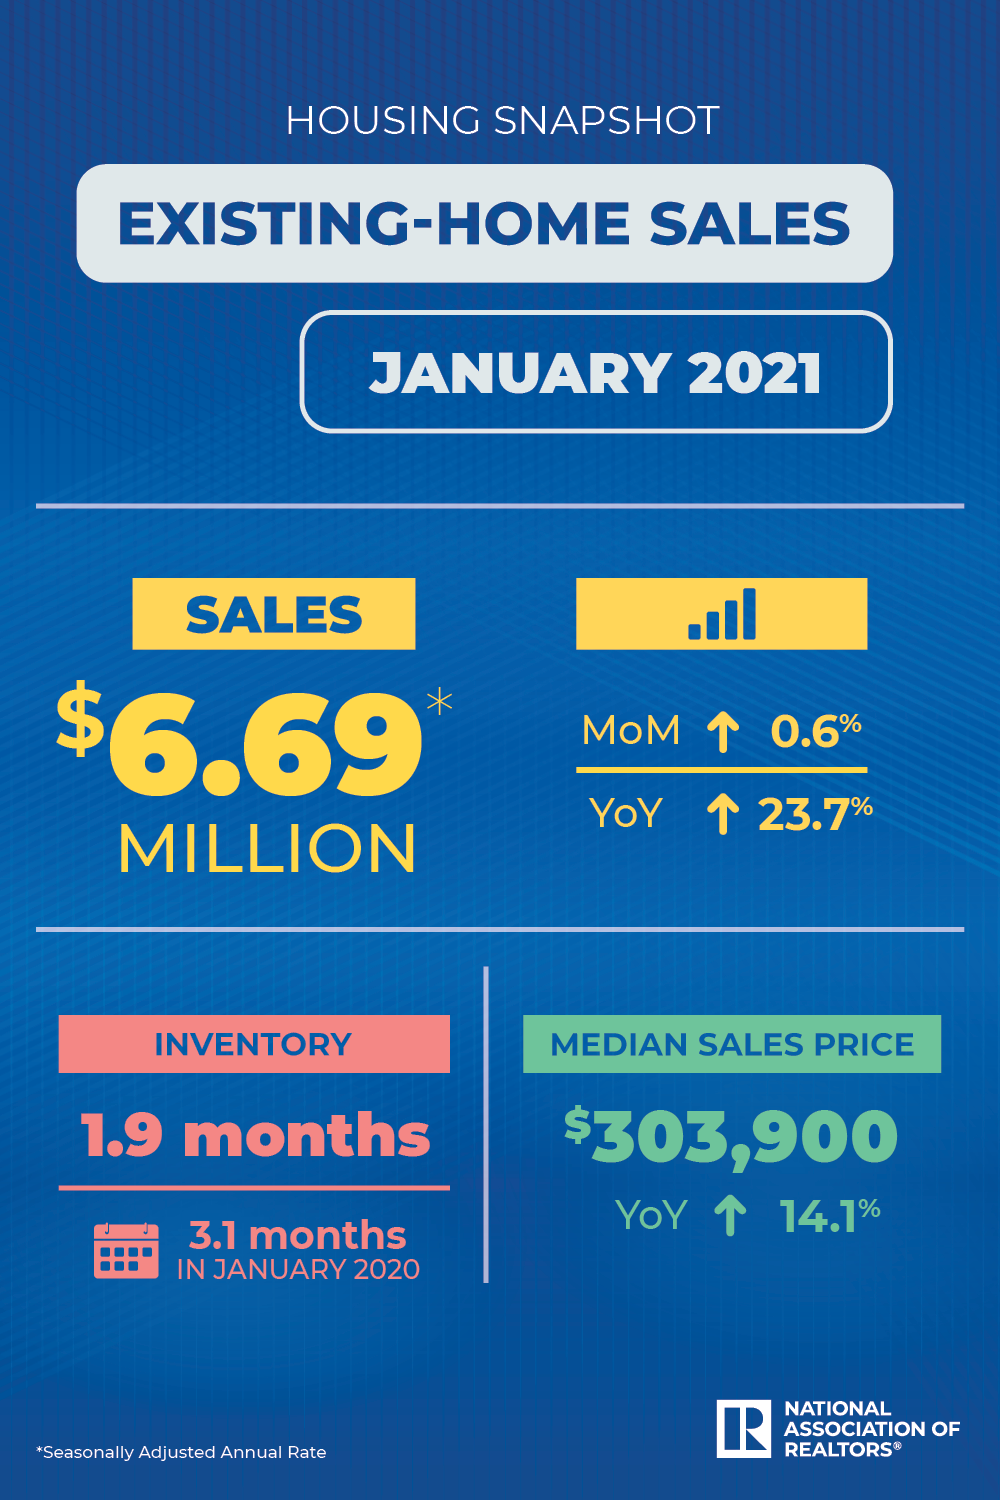 Existing Home Sales Tick Up 20.20 in January